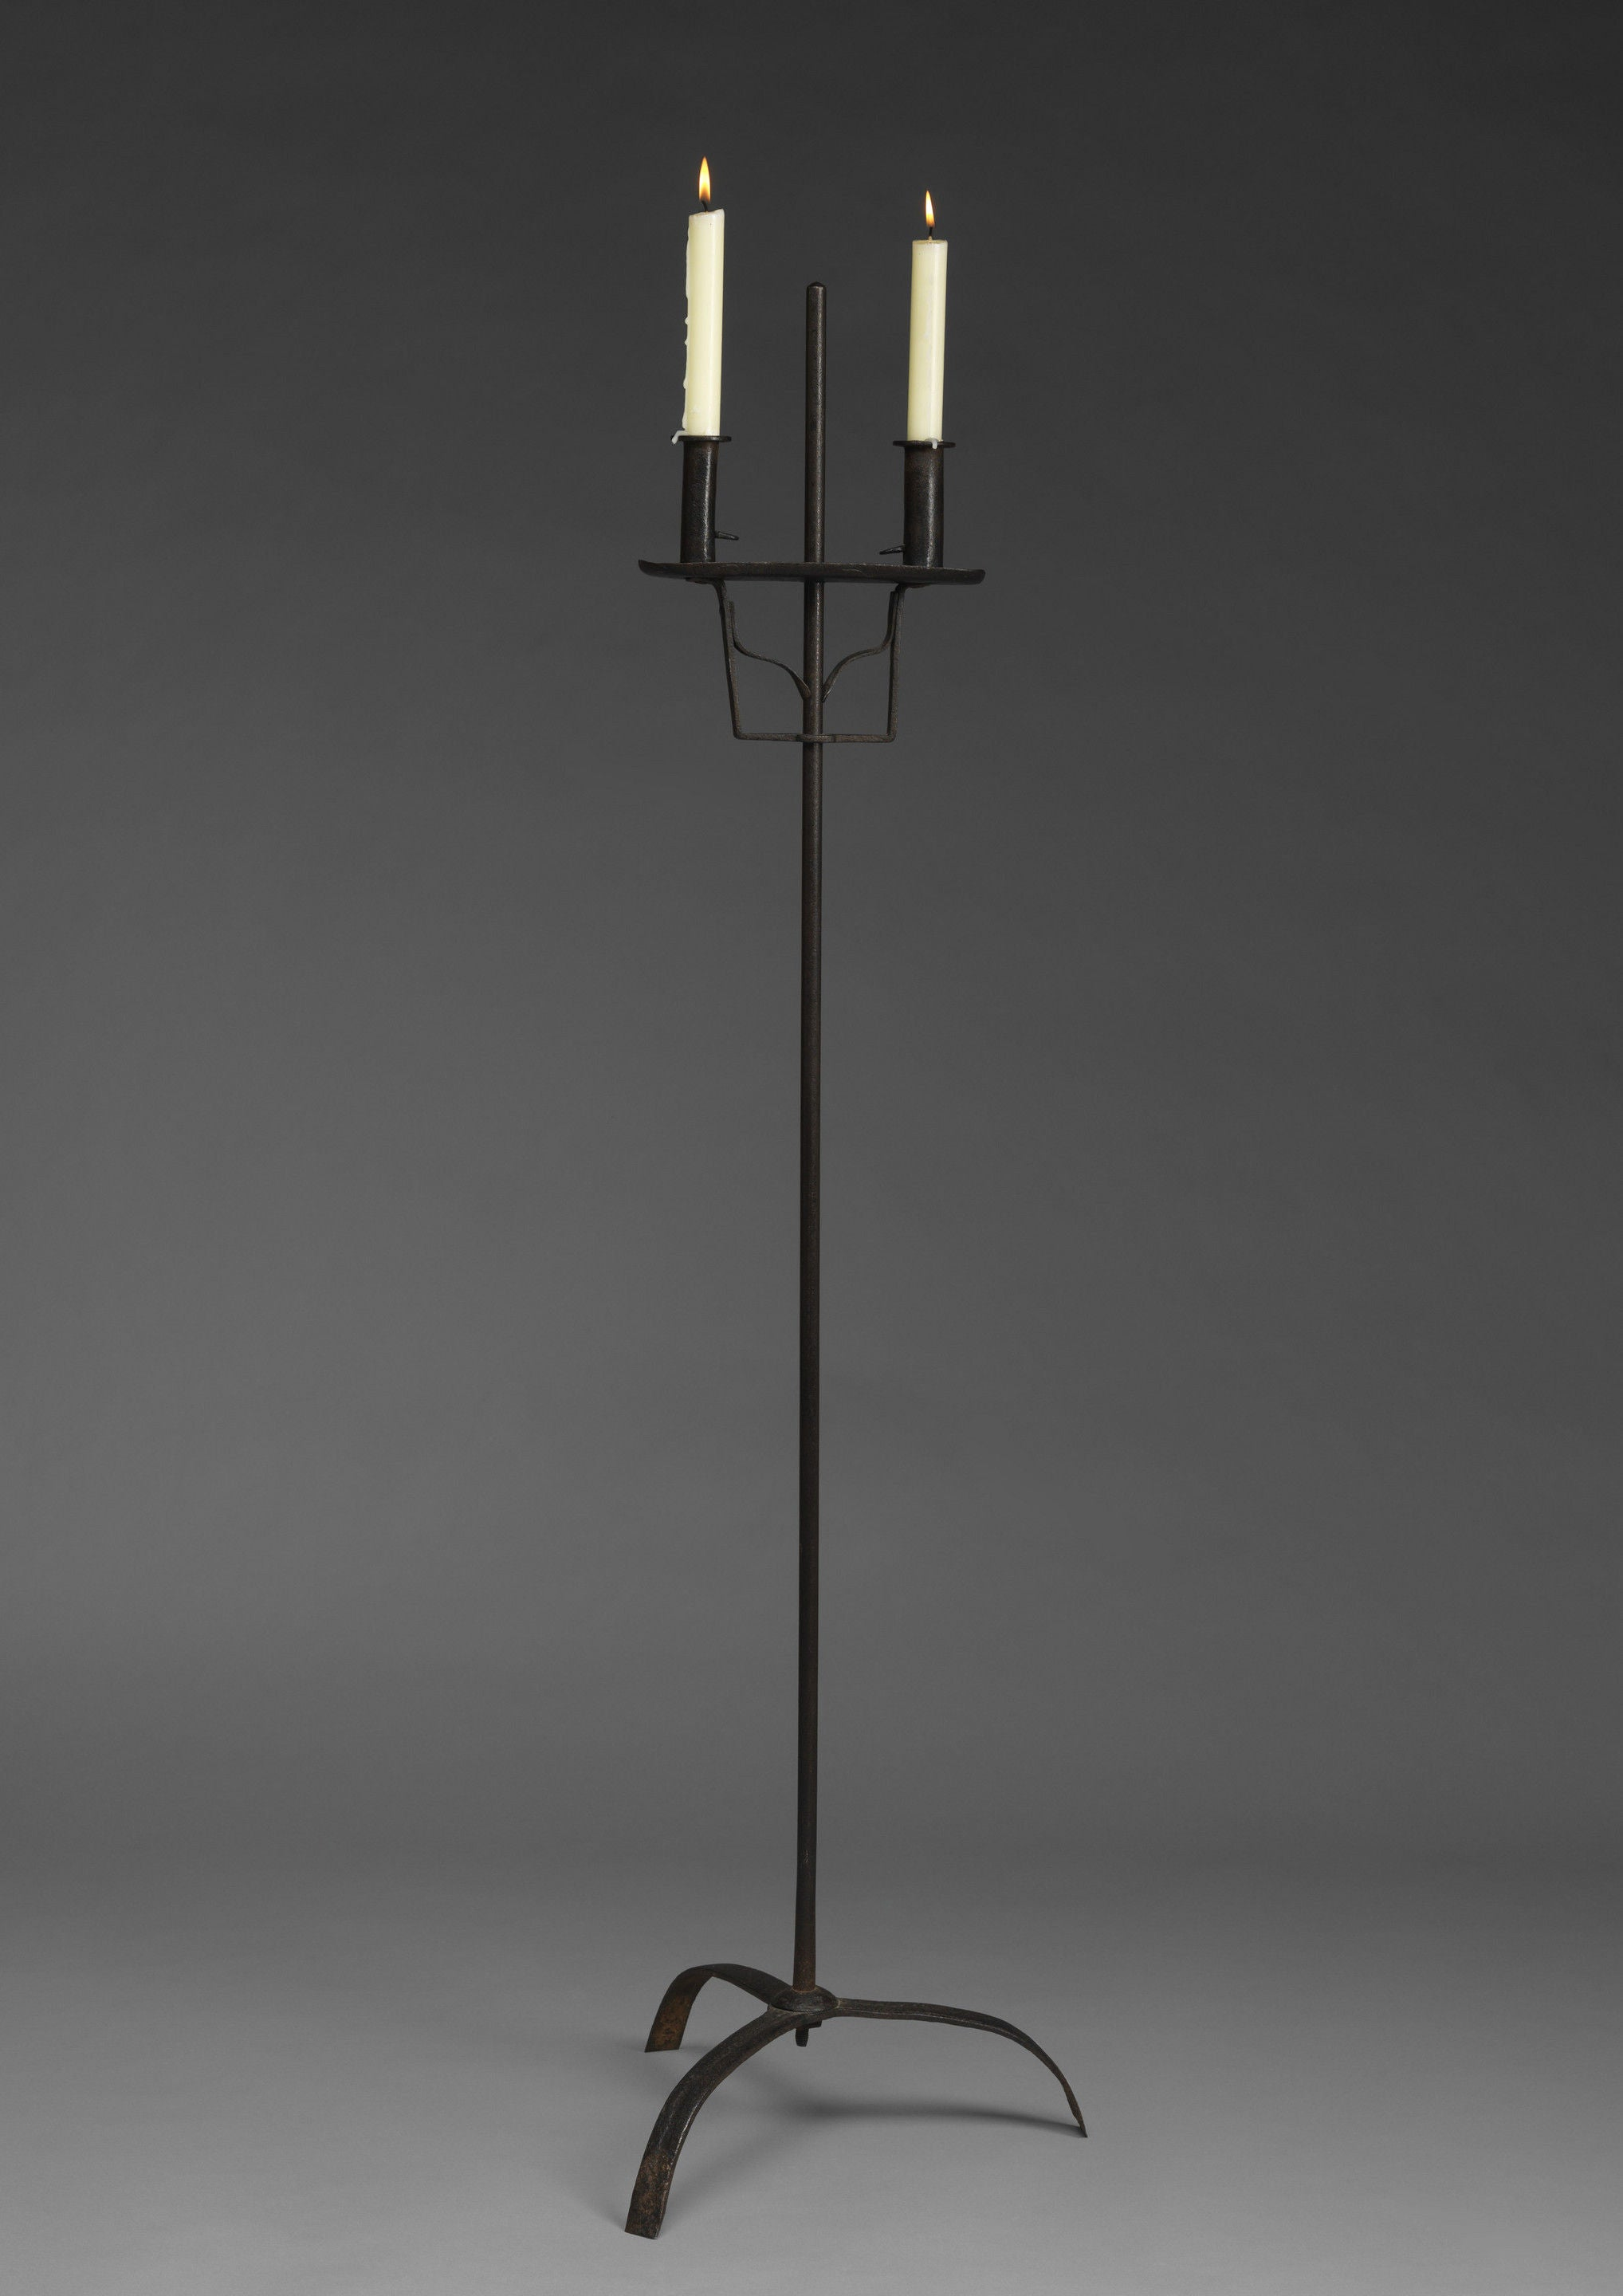 Adjustable Floorstanding Lighting Device